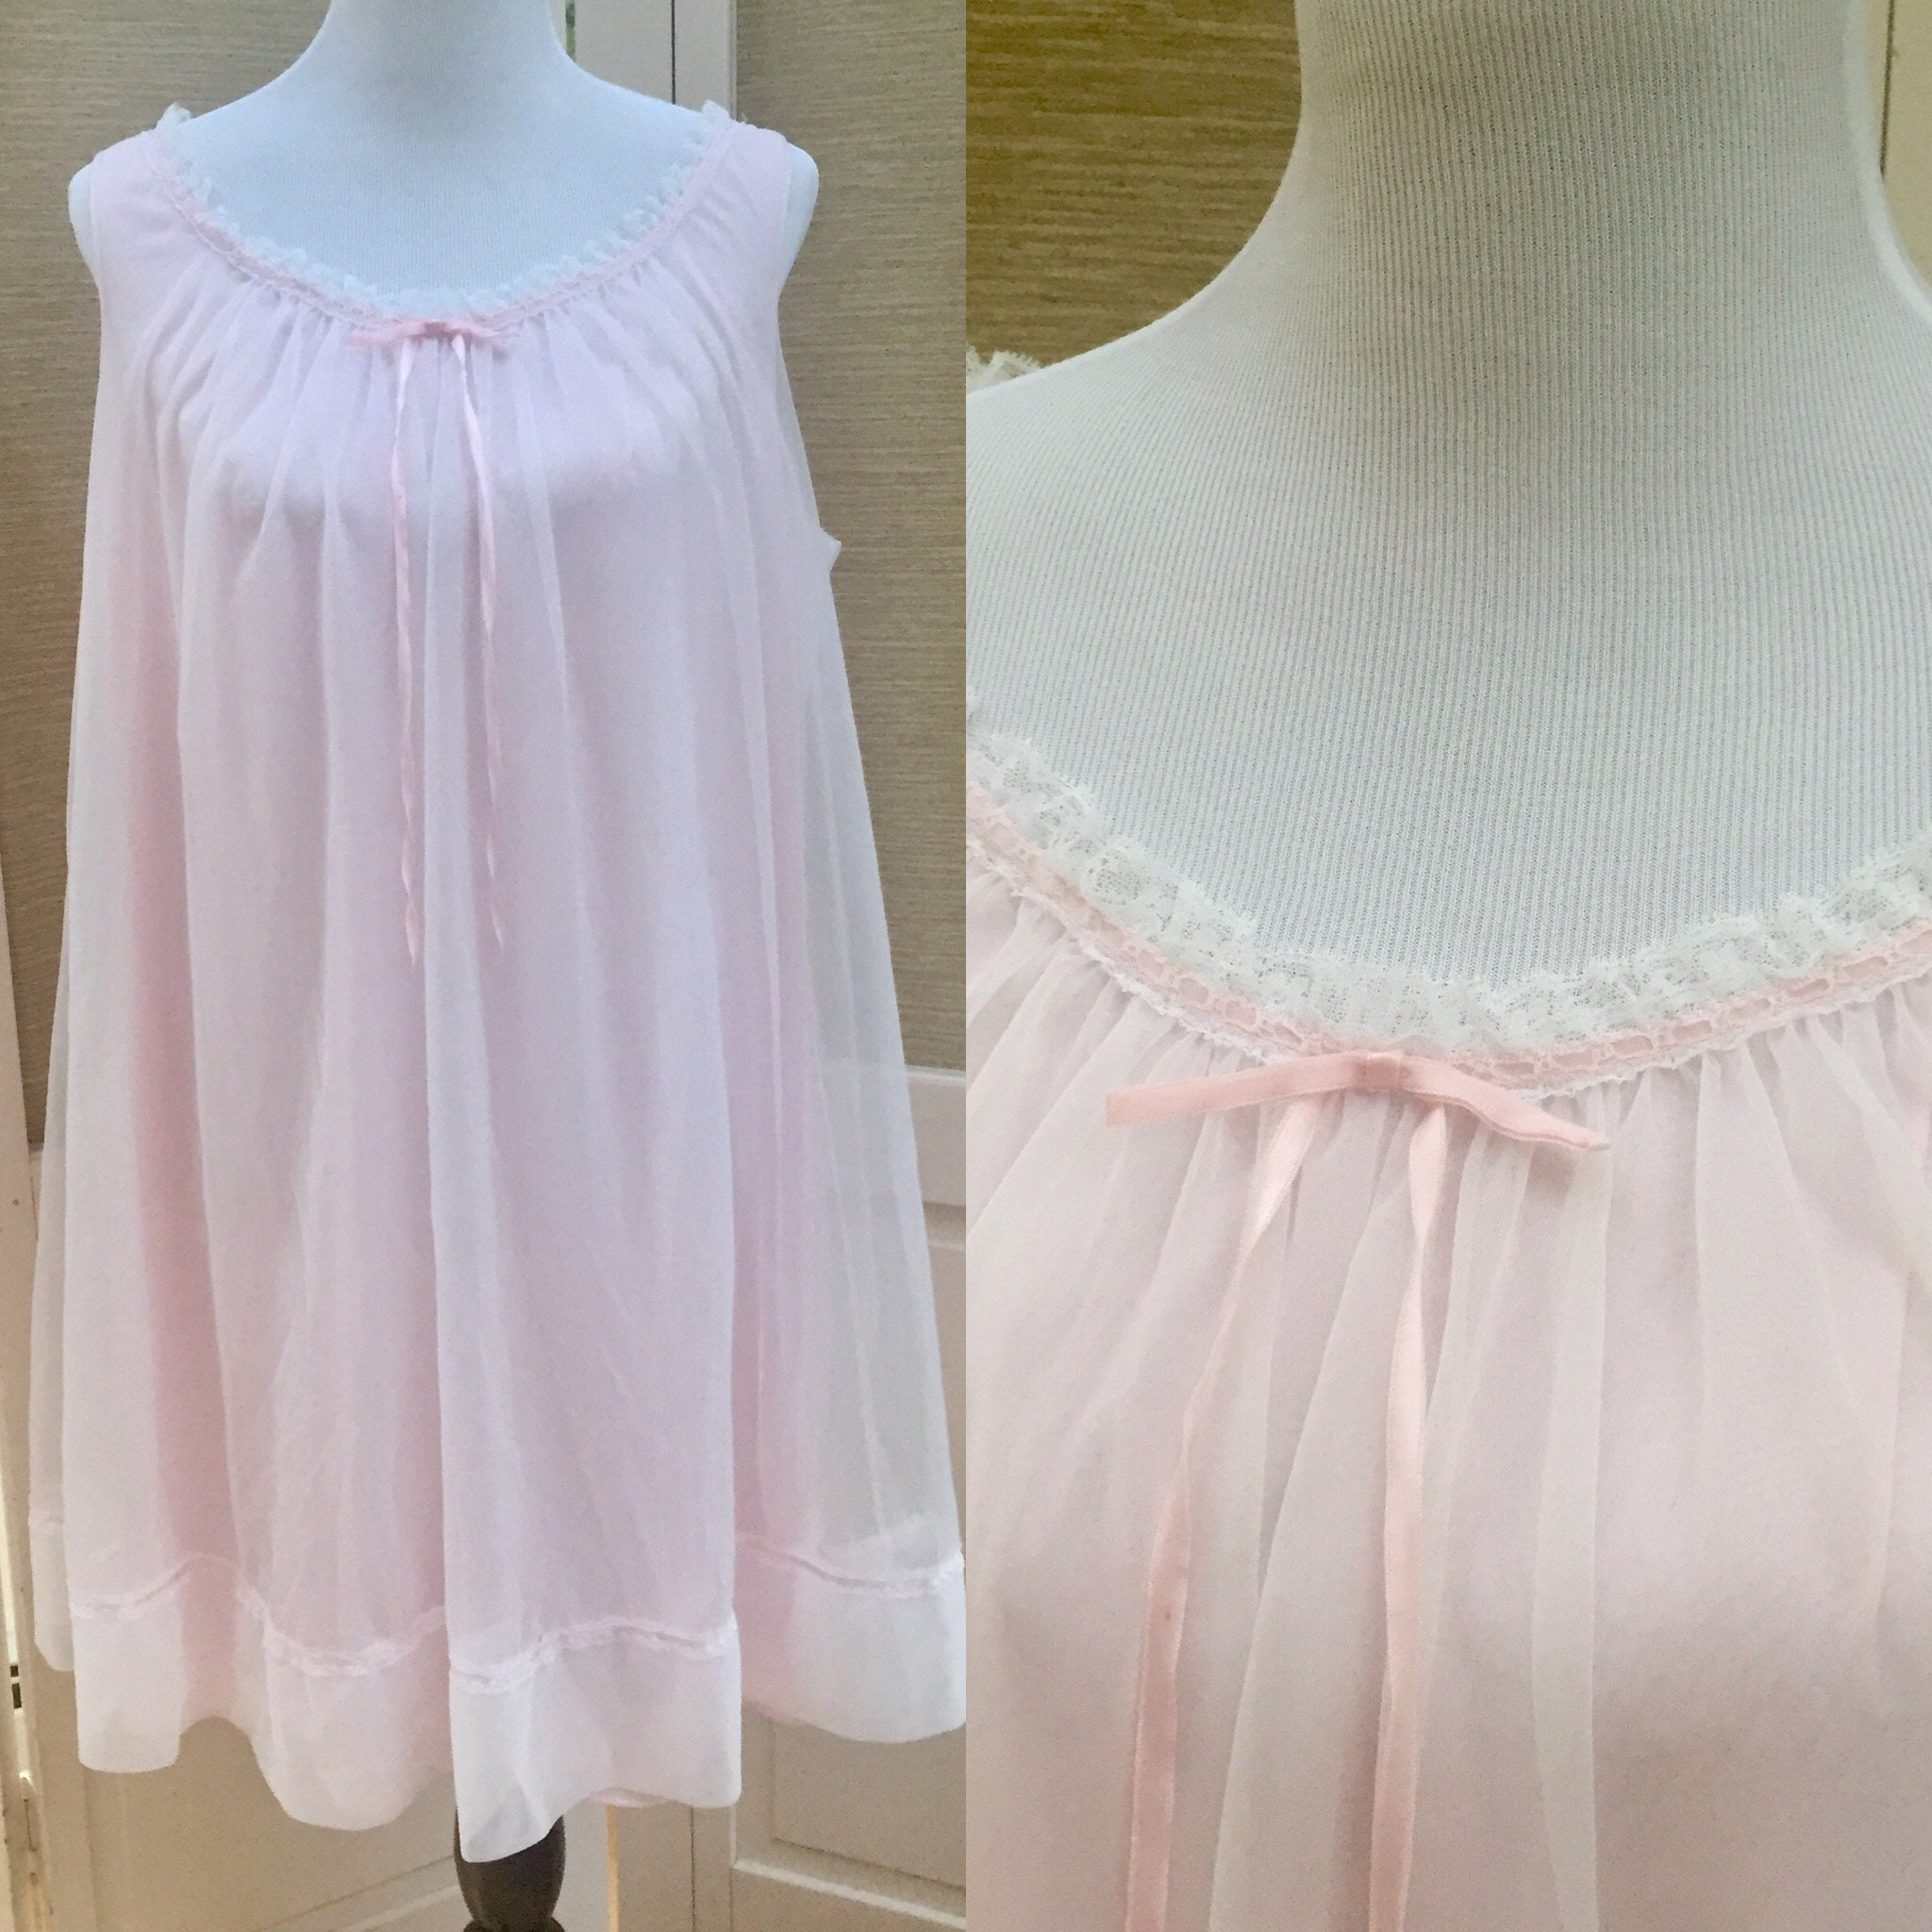 3729a5a318e8 ... 60s Lingerie, Vintage Pink Nightie, Vintage 1960's Nightgown, Women's  Size Large. gallery photo ...